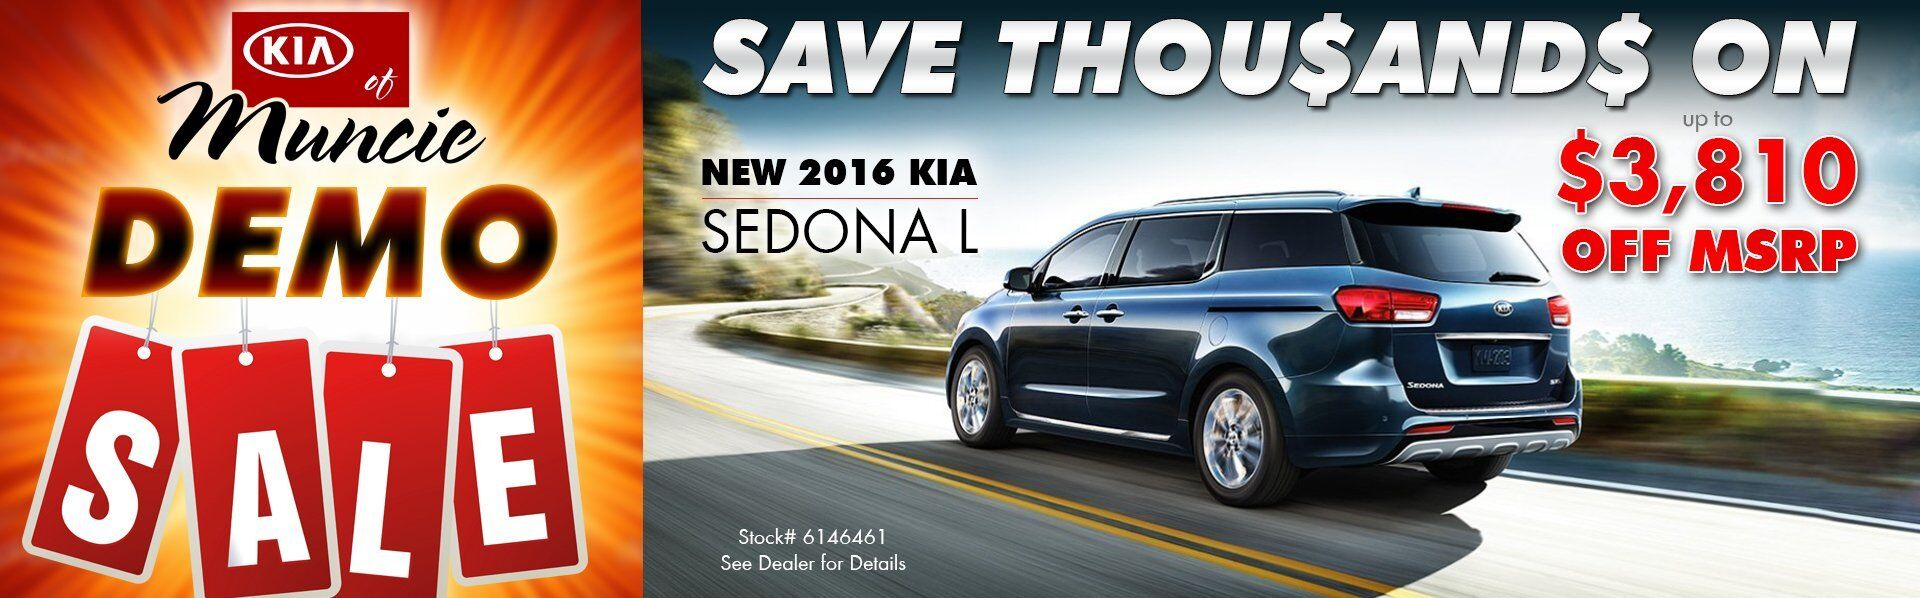 DEMO SALE - 2016 Sedona